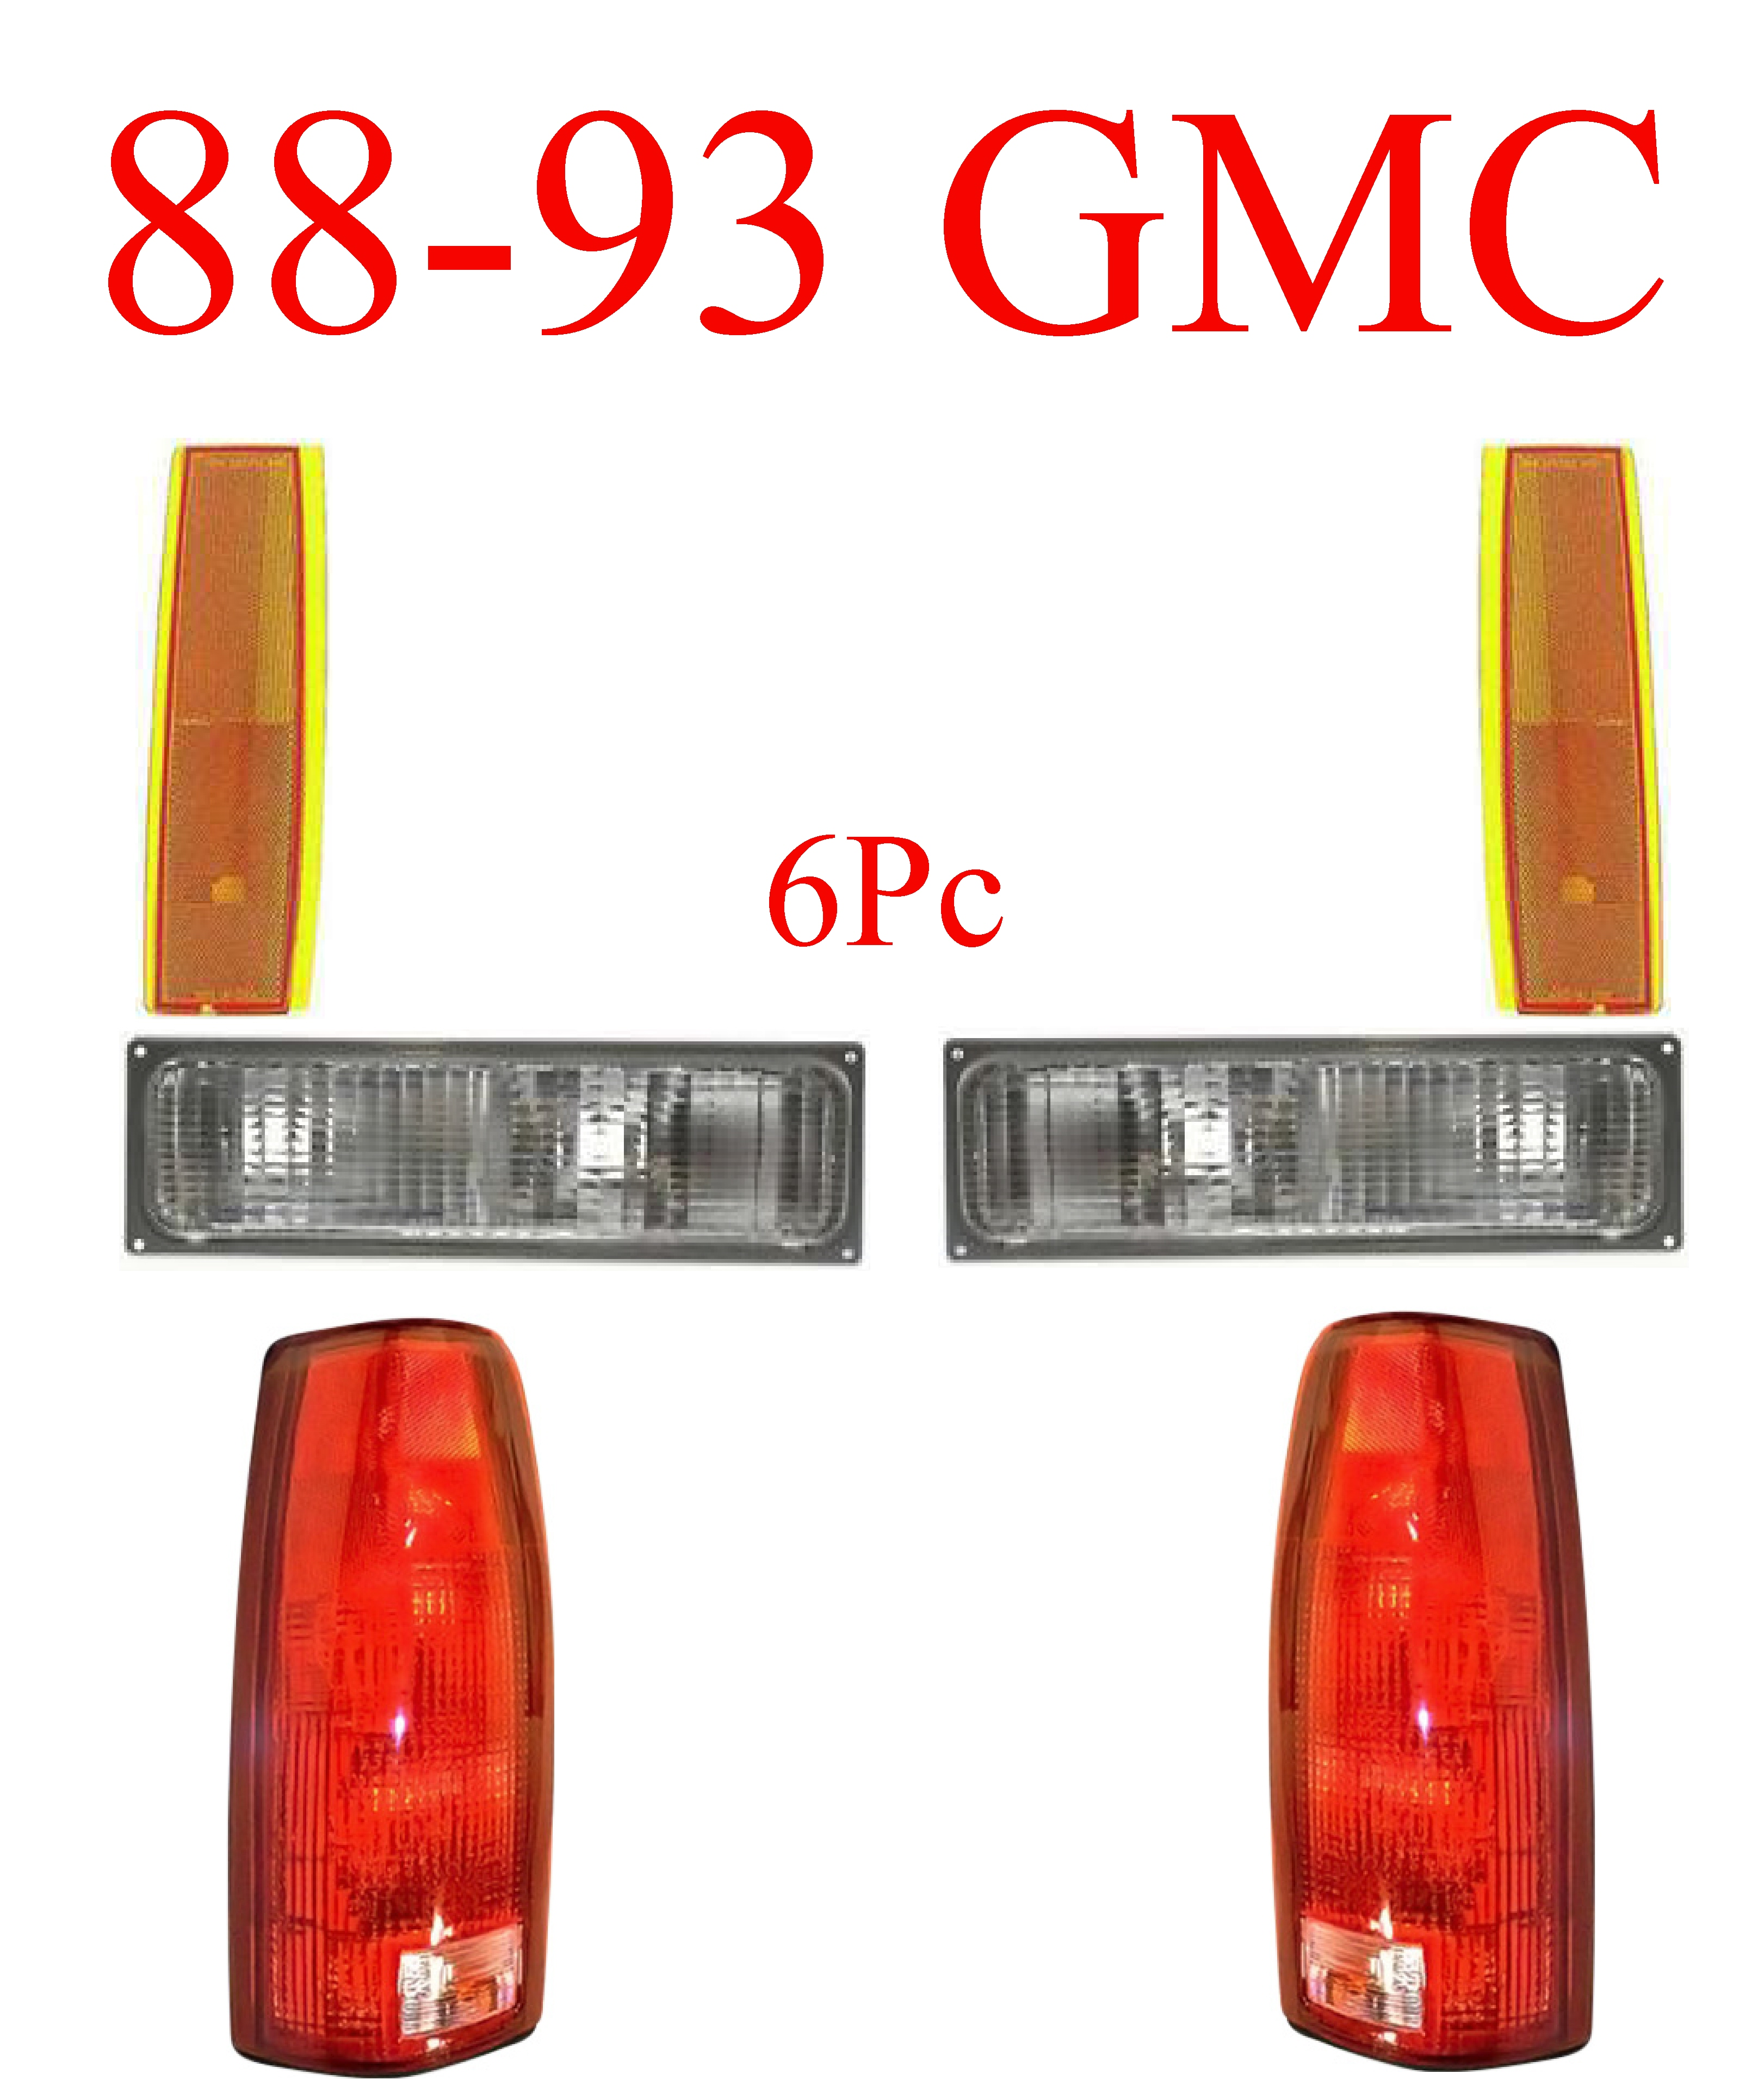 88-93 GMC 6Pc Tail Light, Parking & Side Amber Lights